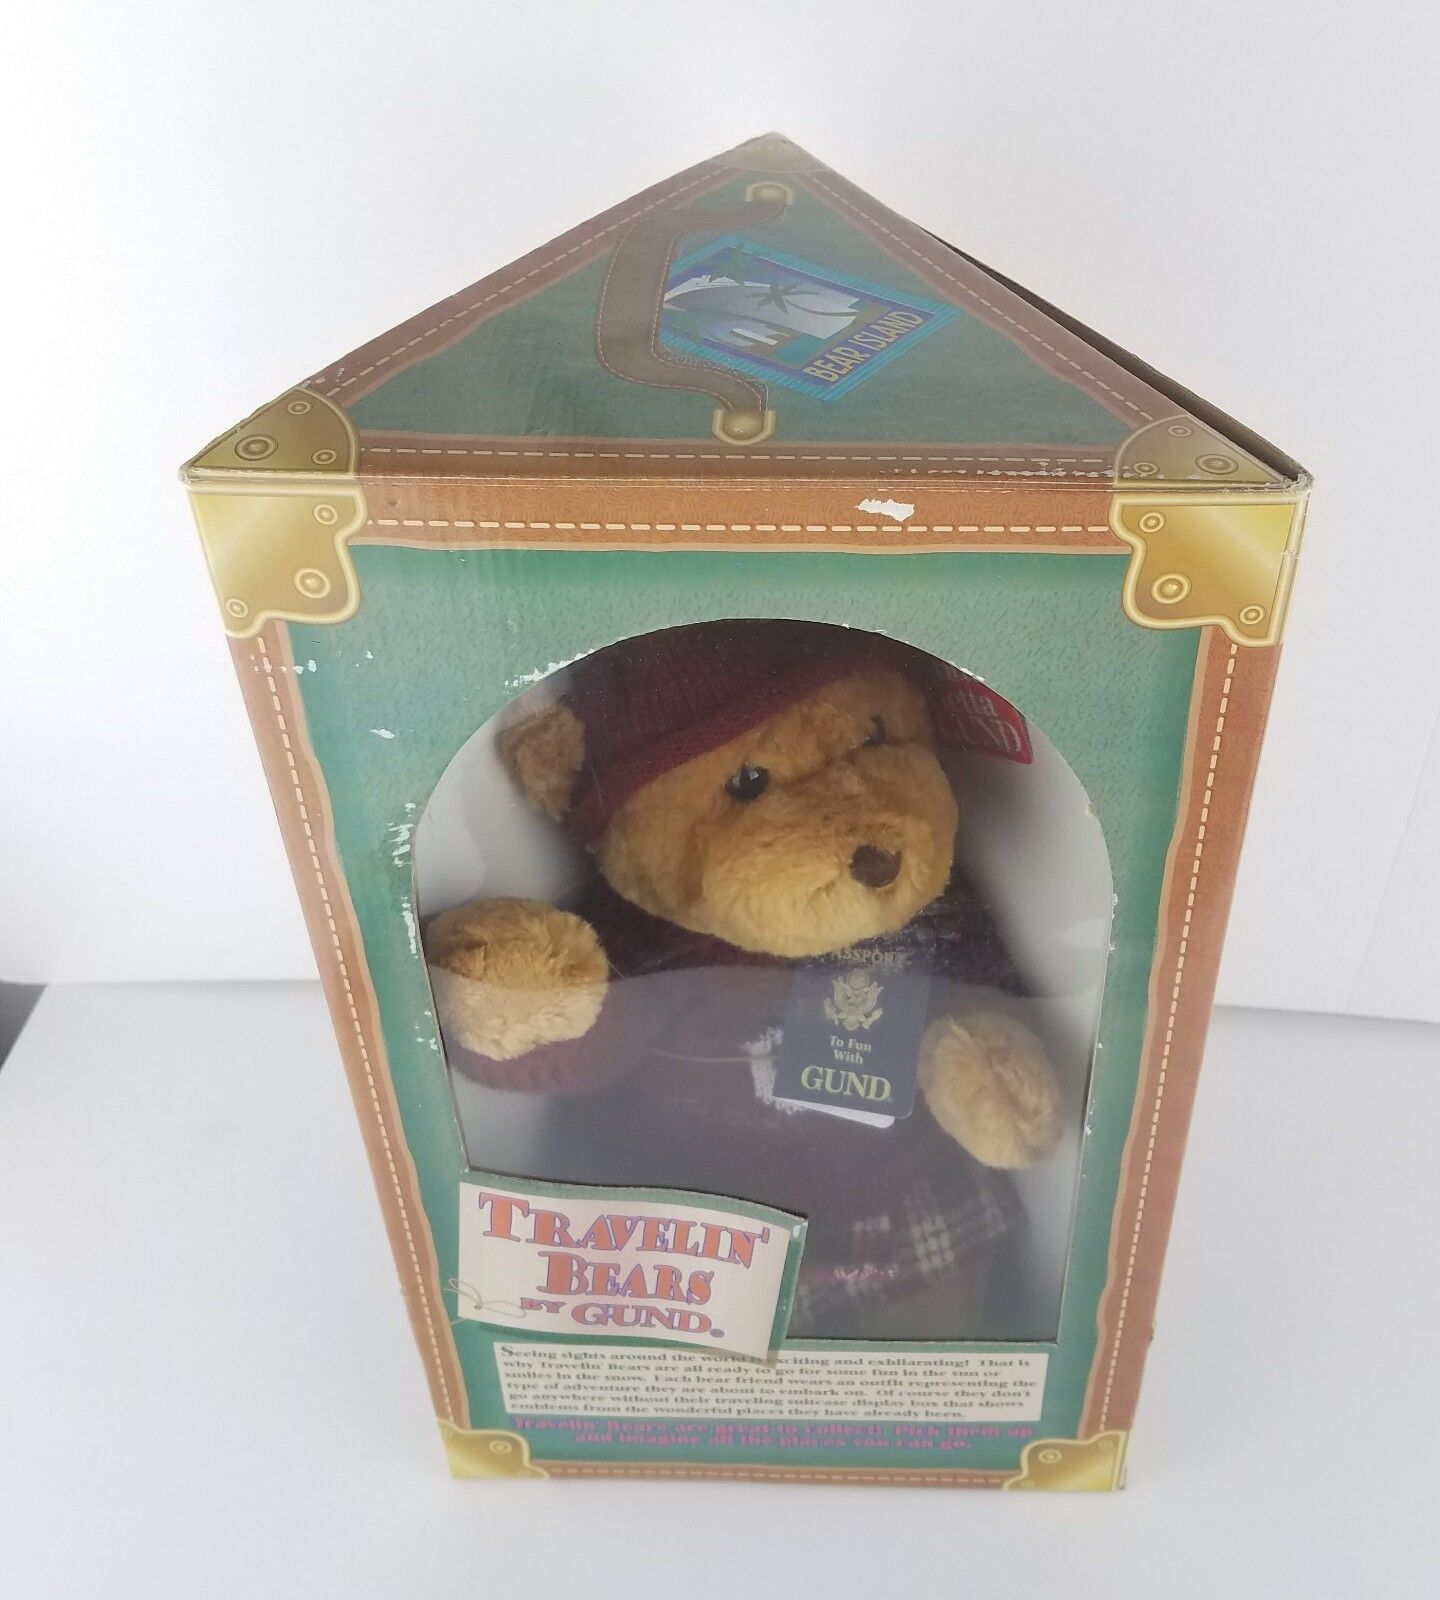 NWT Travelin Bear by Gund Braun Teddy Bear 14